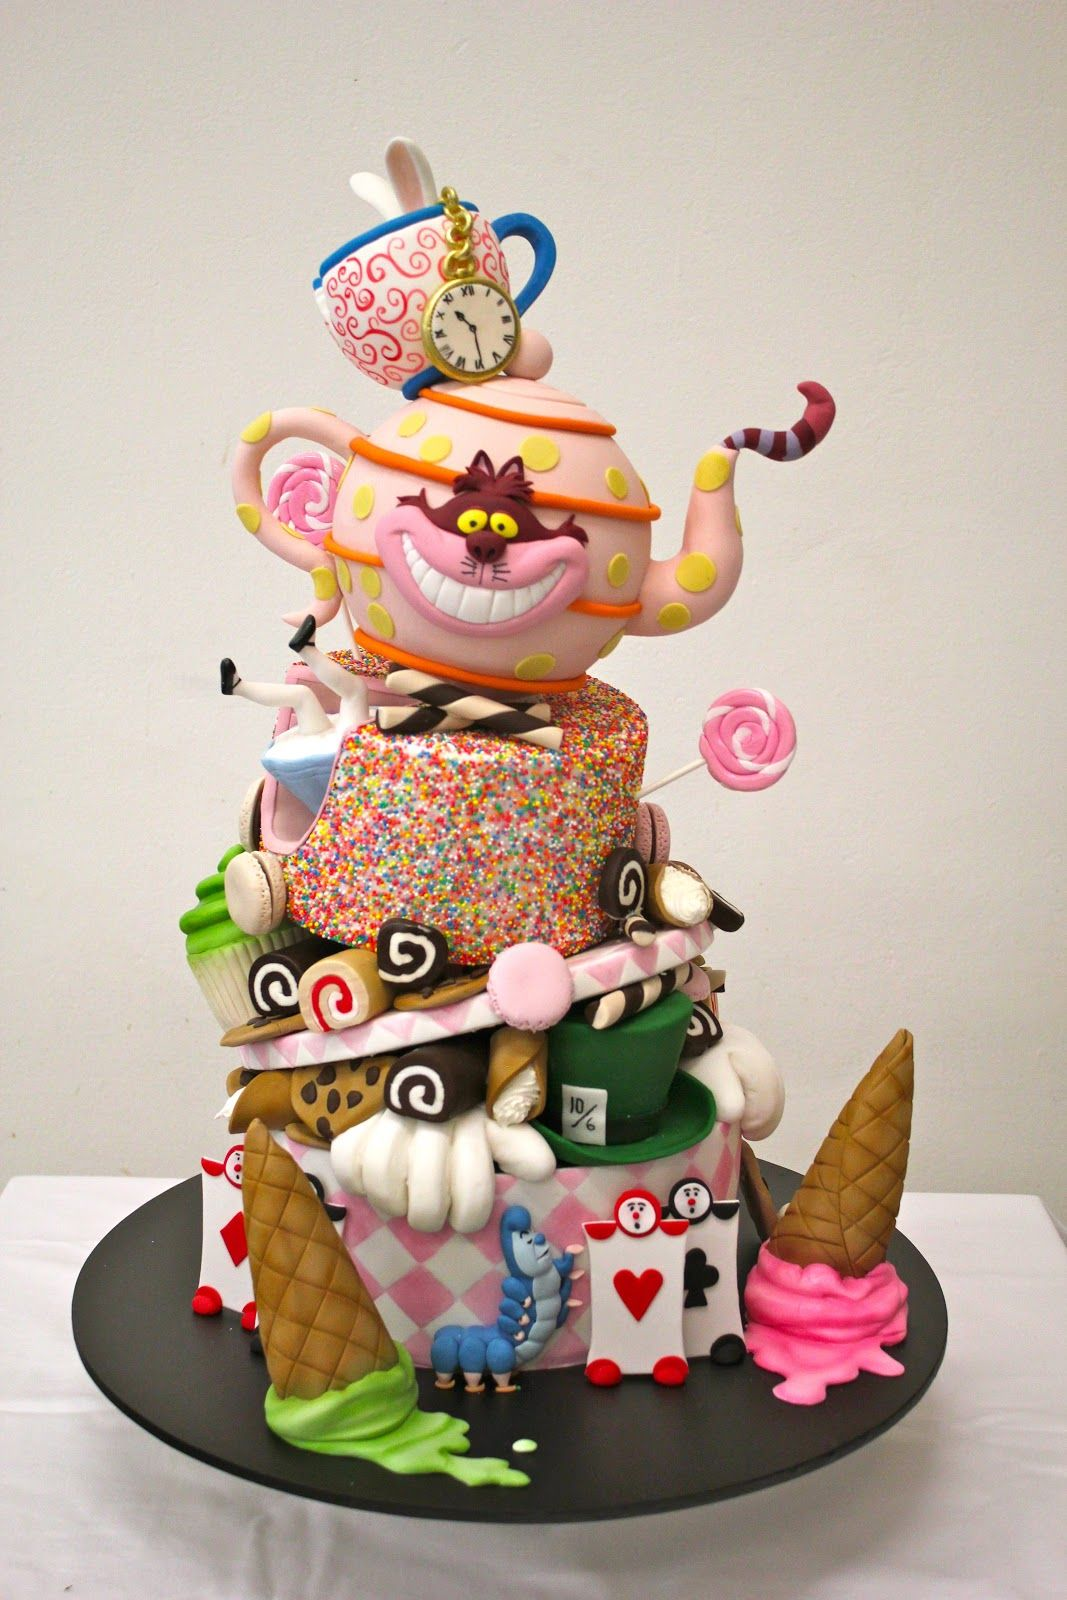 Mad hatter tea party decoration ideas - Mad Hatter Adult Theme Party Cake Google Search